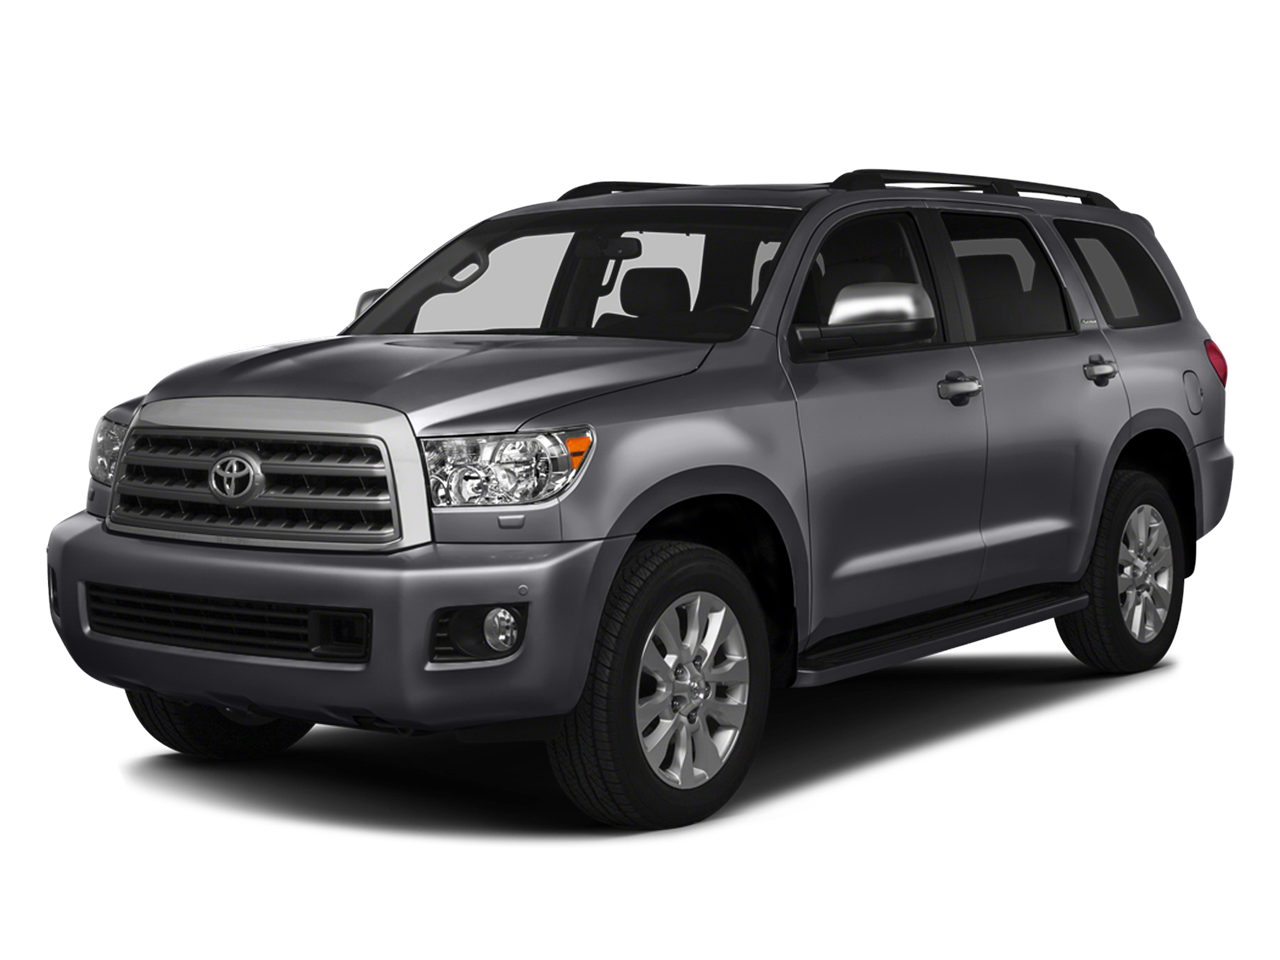 2016 Toyota Sequoia Dealer Serving Oakland and San Jose